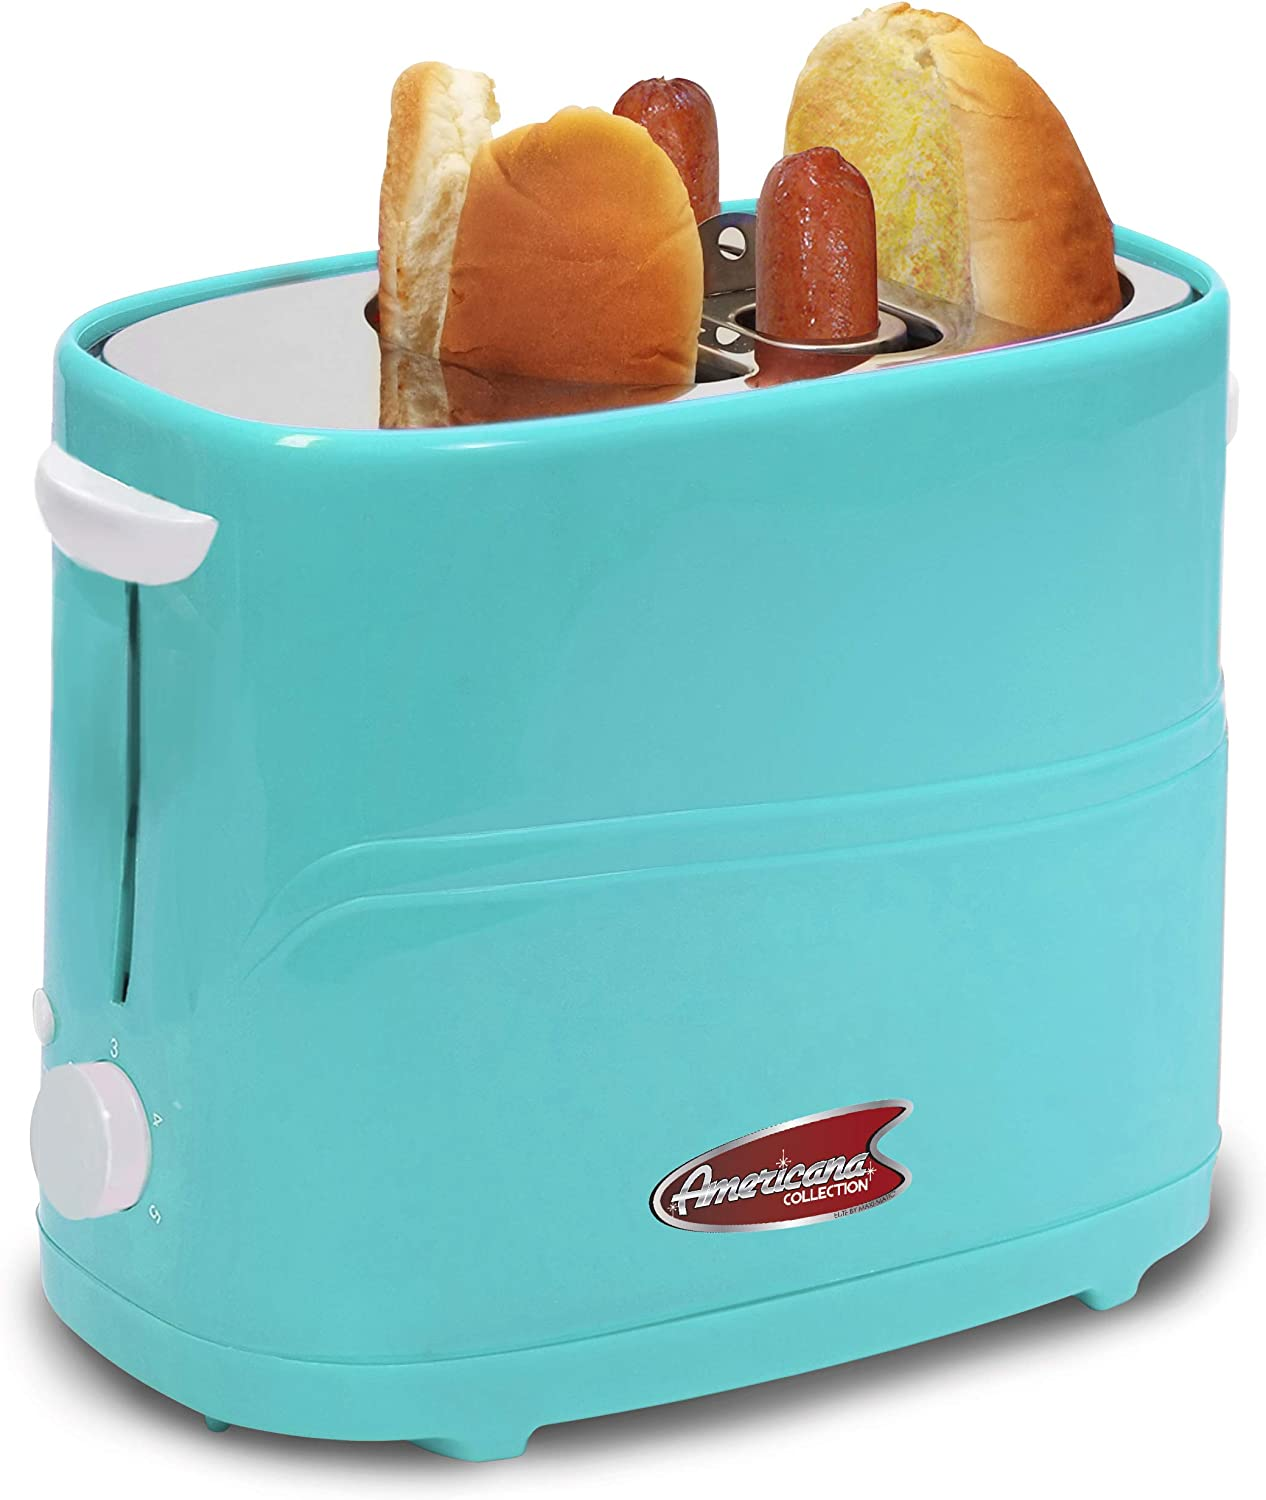 Elite Gourmet ECT-542BL Retro Pop-Up Hot Dog and Bun Toaster Cooker Machine with Tongs, Heat Veggie Links Kosher Beef Turkey Sausages Bratwurst, 2 Slice